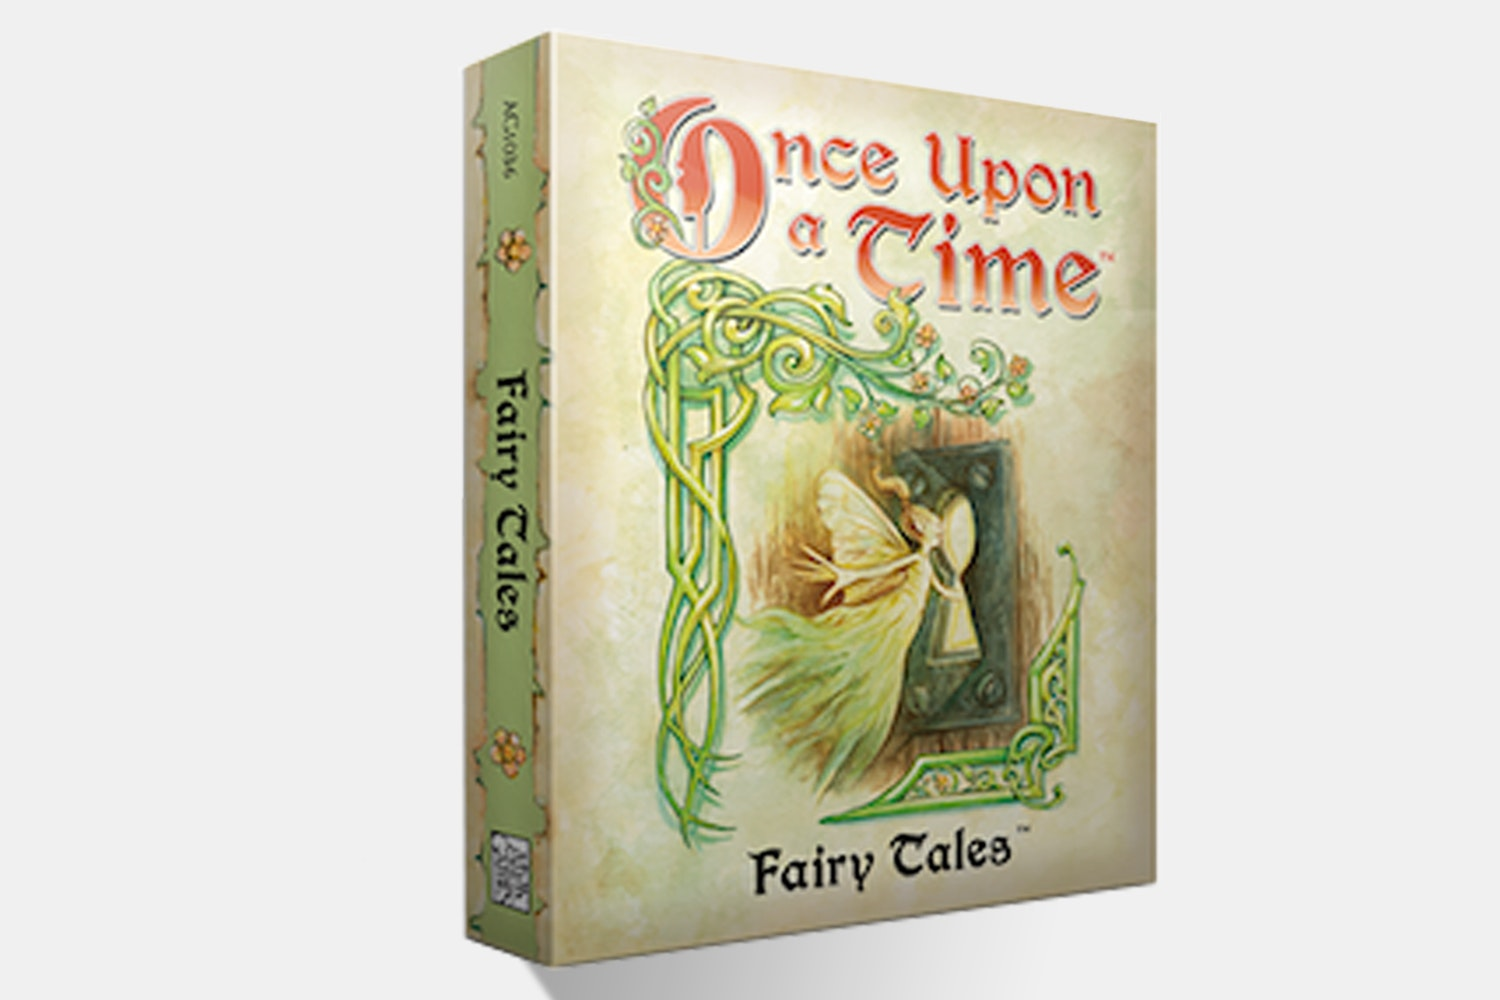 Once Upon a Time (Fairy Tales)